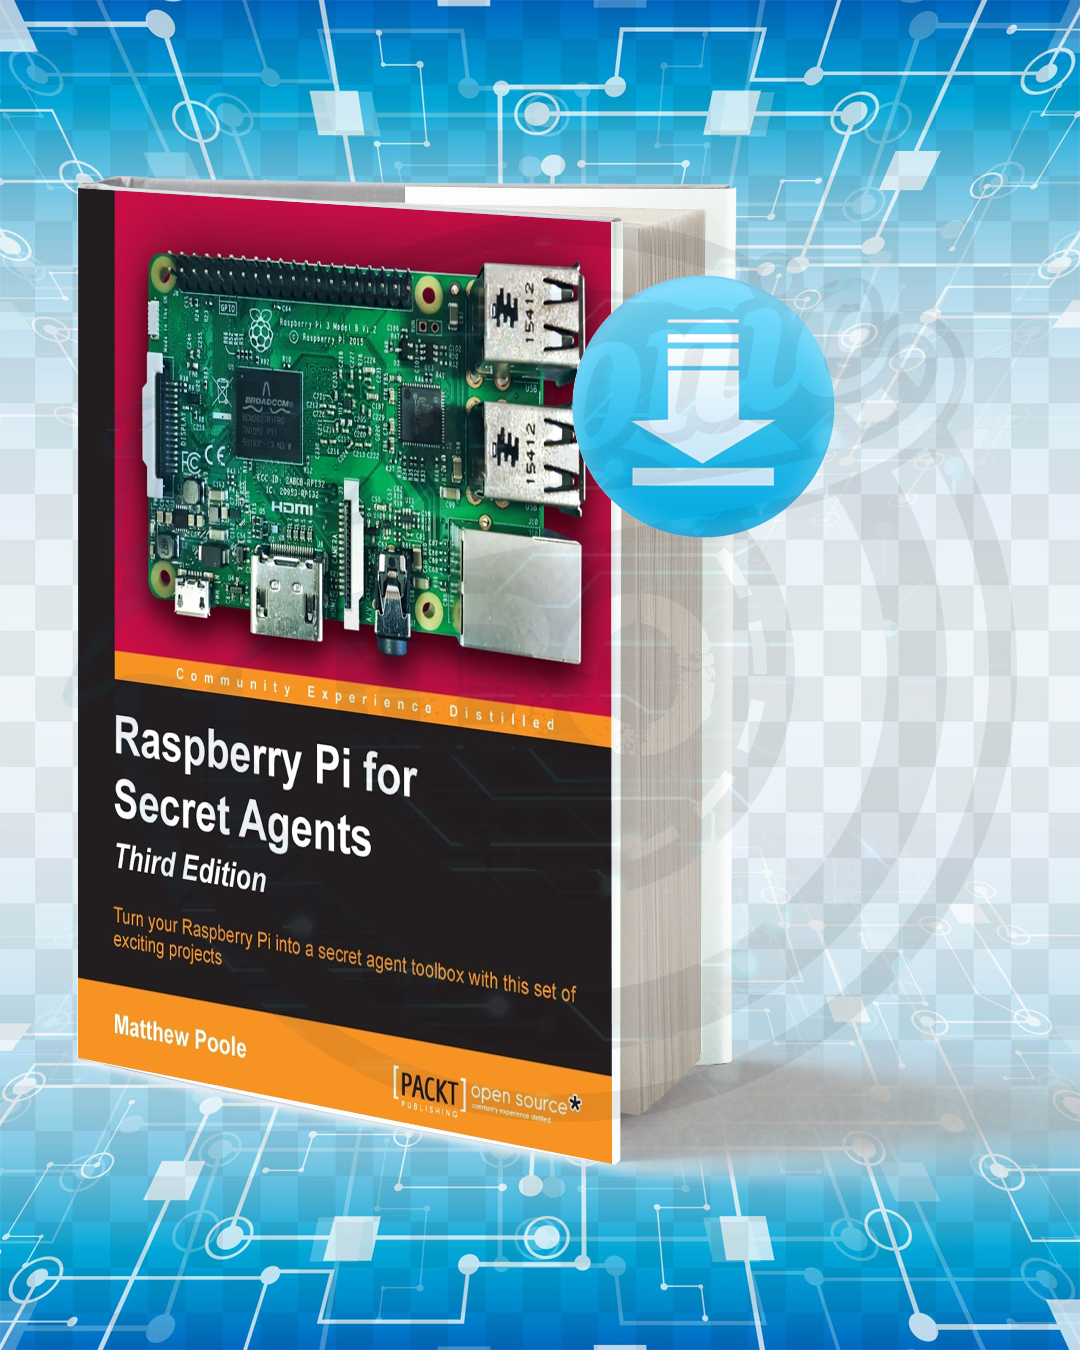 Free Book Raspberry Pi for Secret Agents pdf.